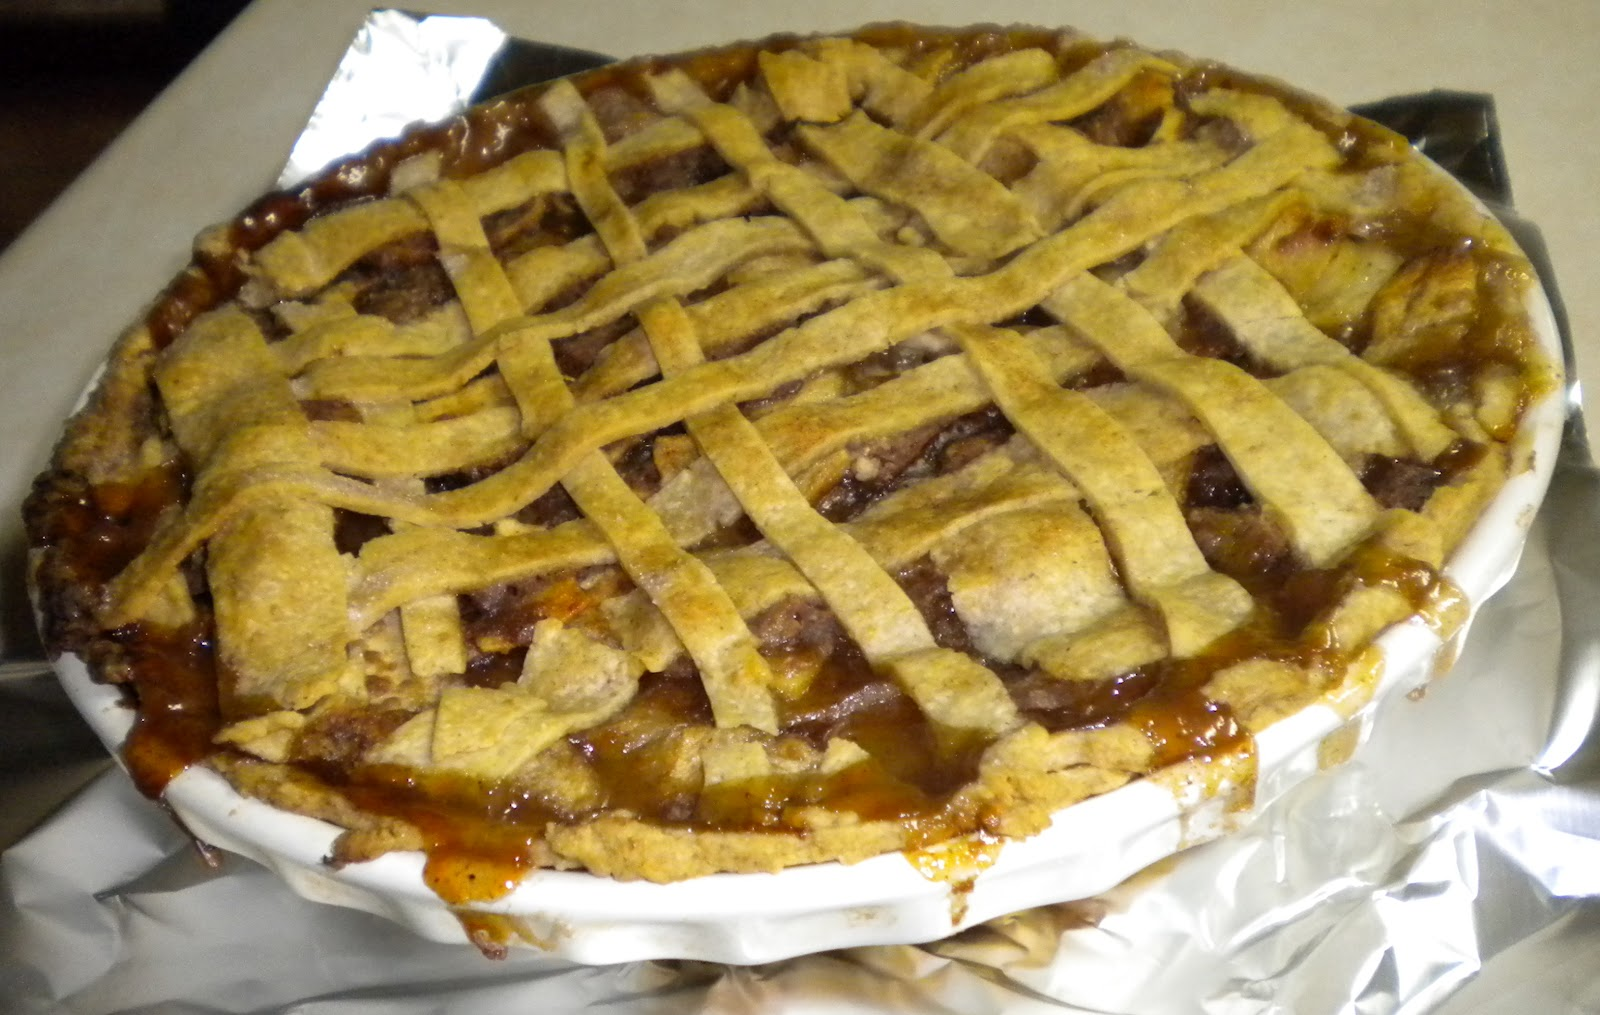 Pats Posts: Windy fall days and Brandy apple pie